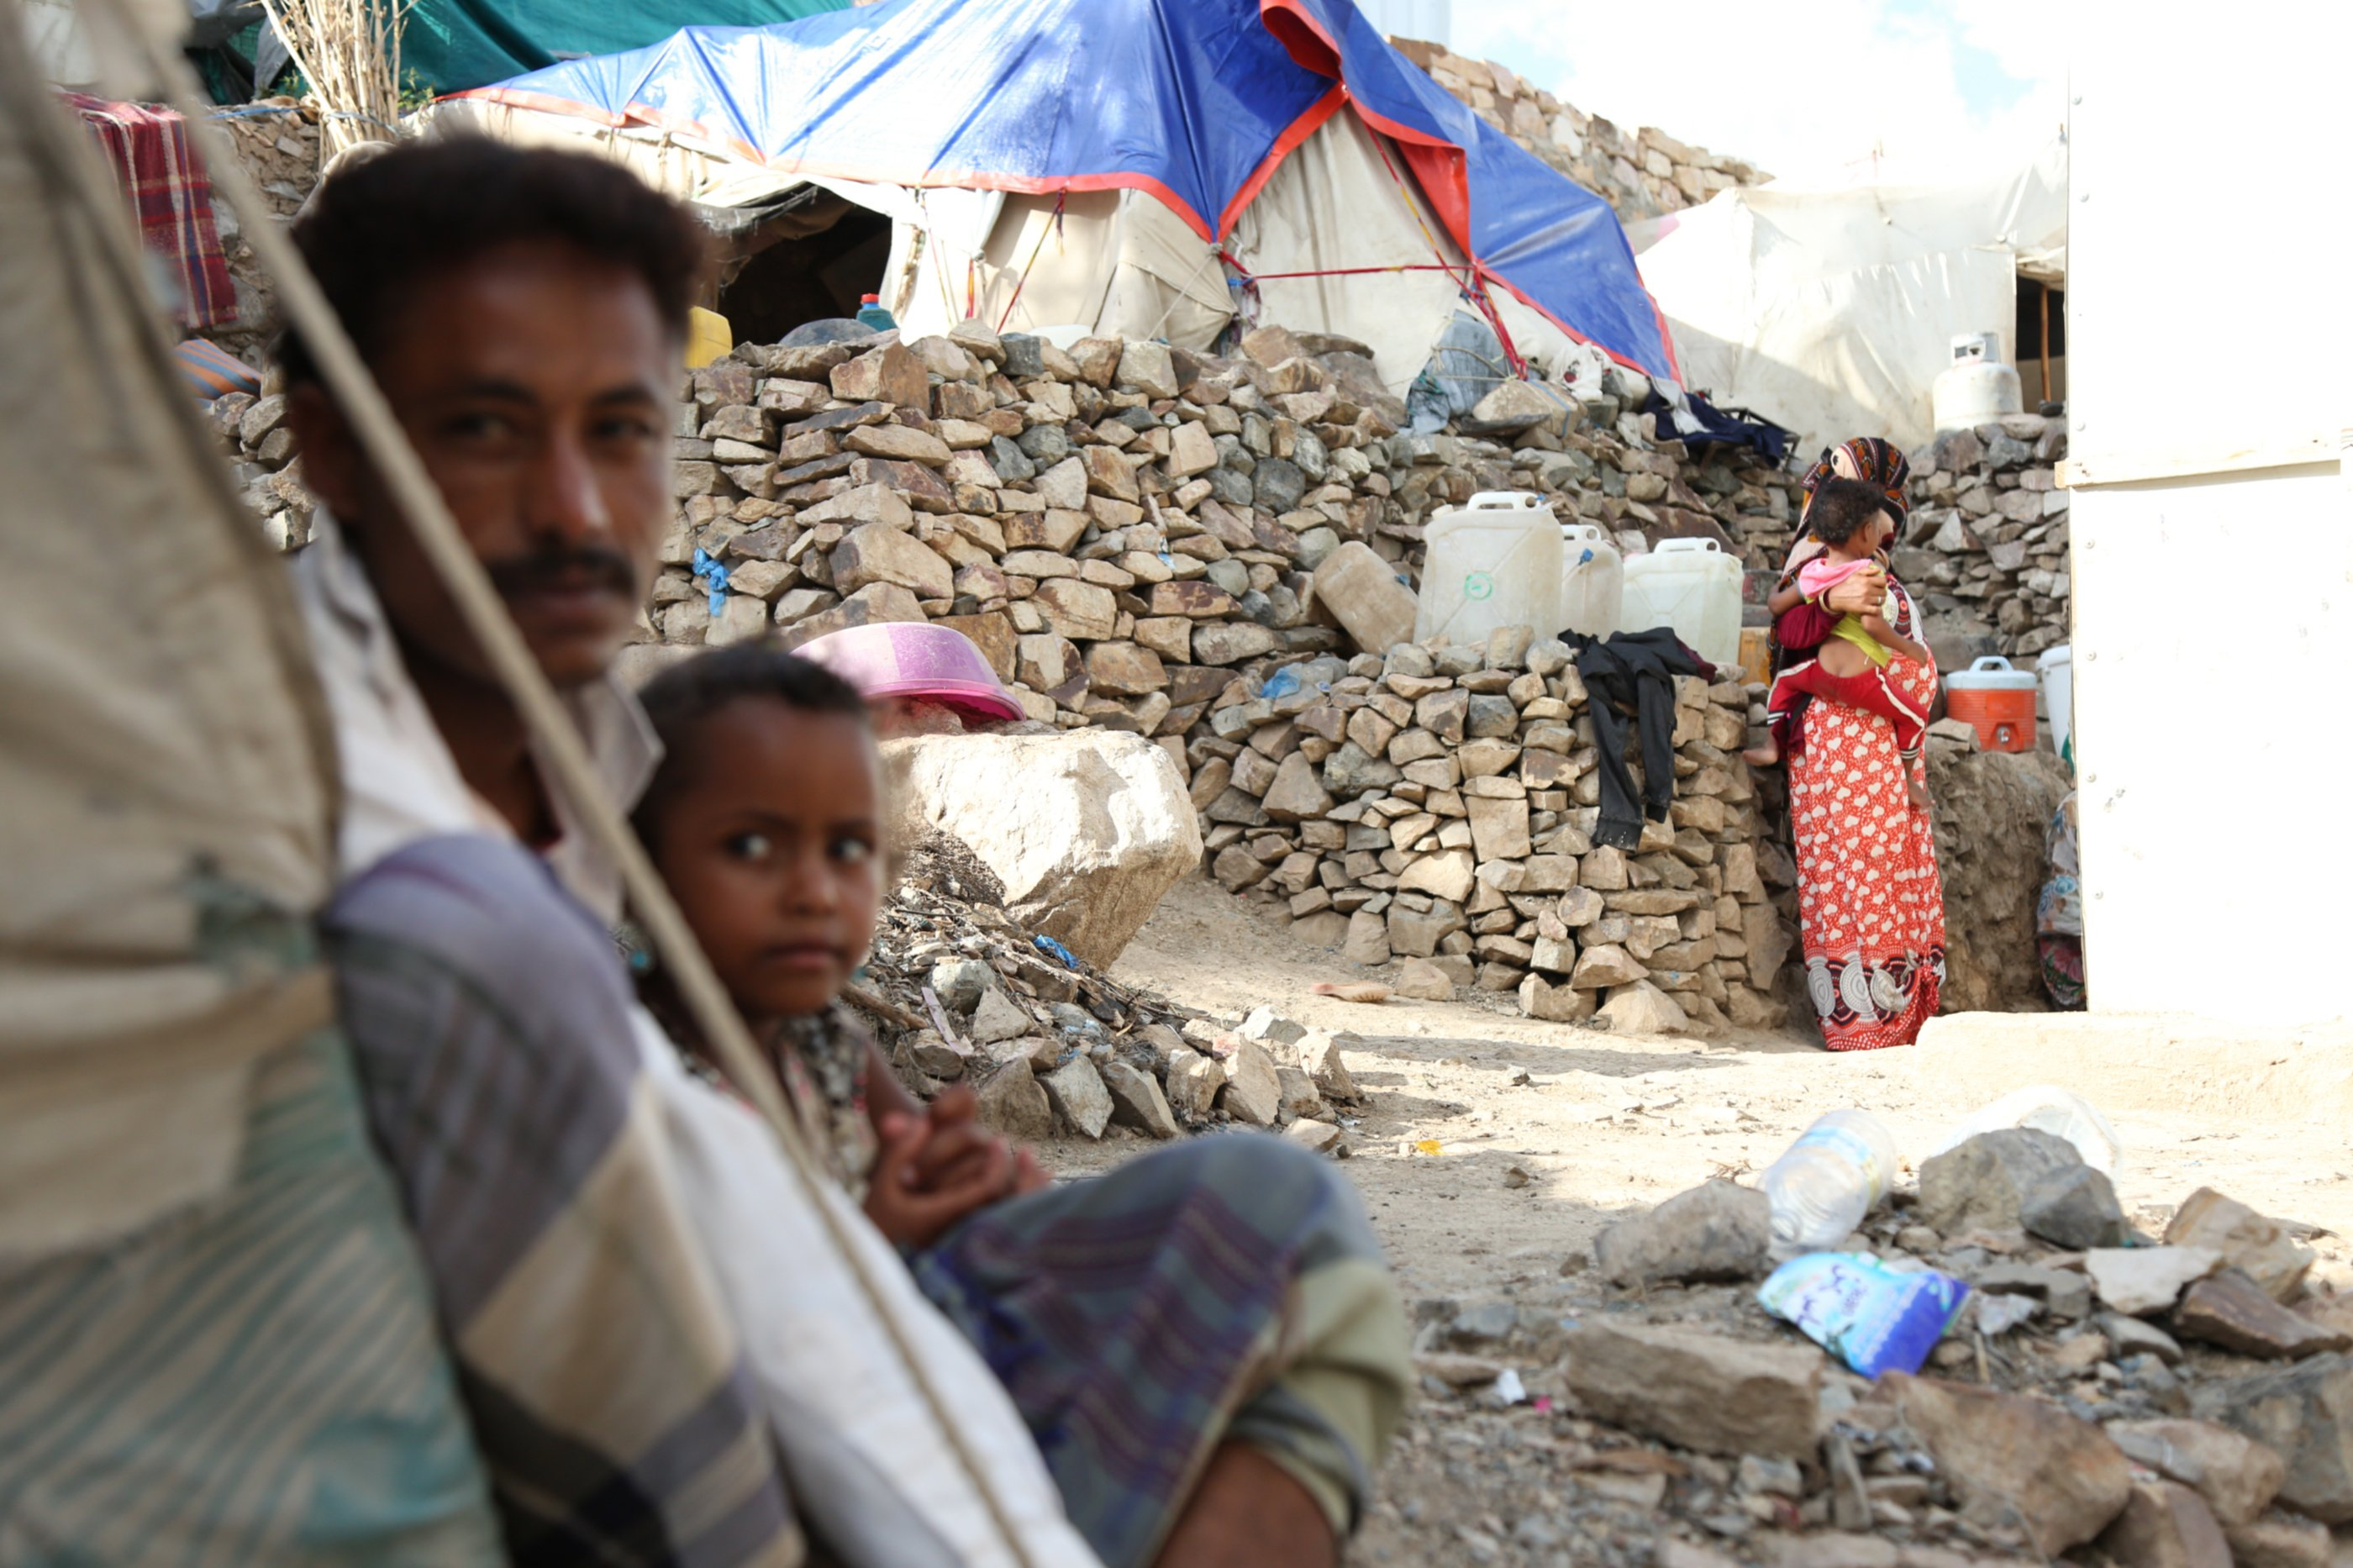 Displaced people in Yemen, Taiz